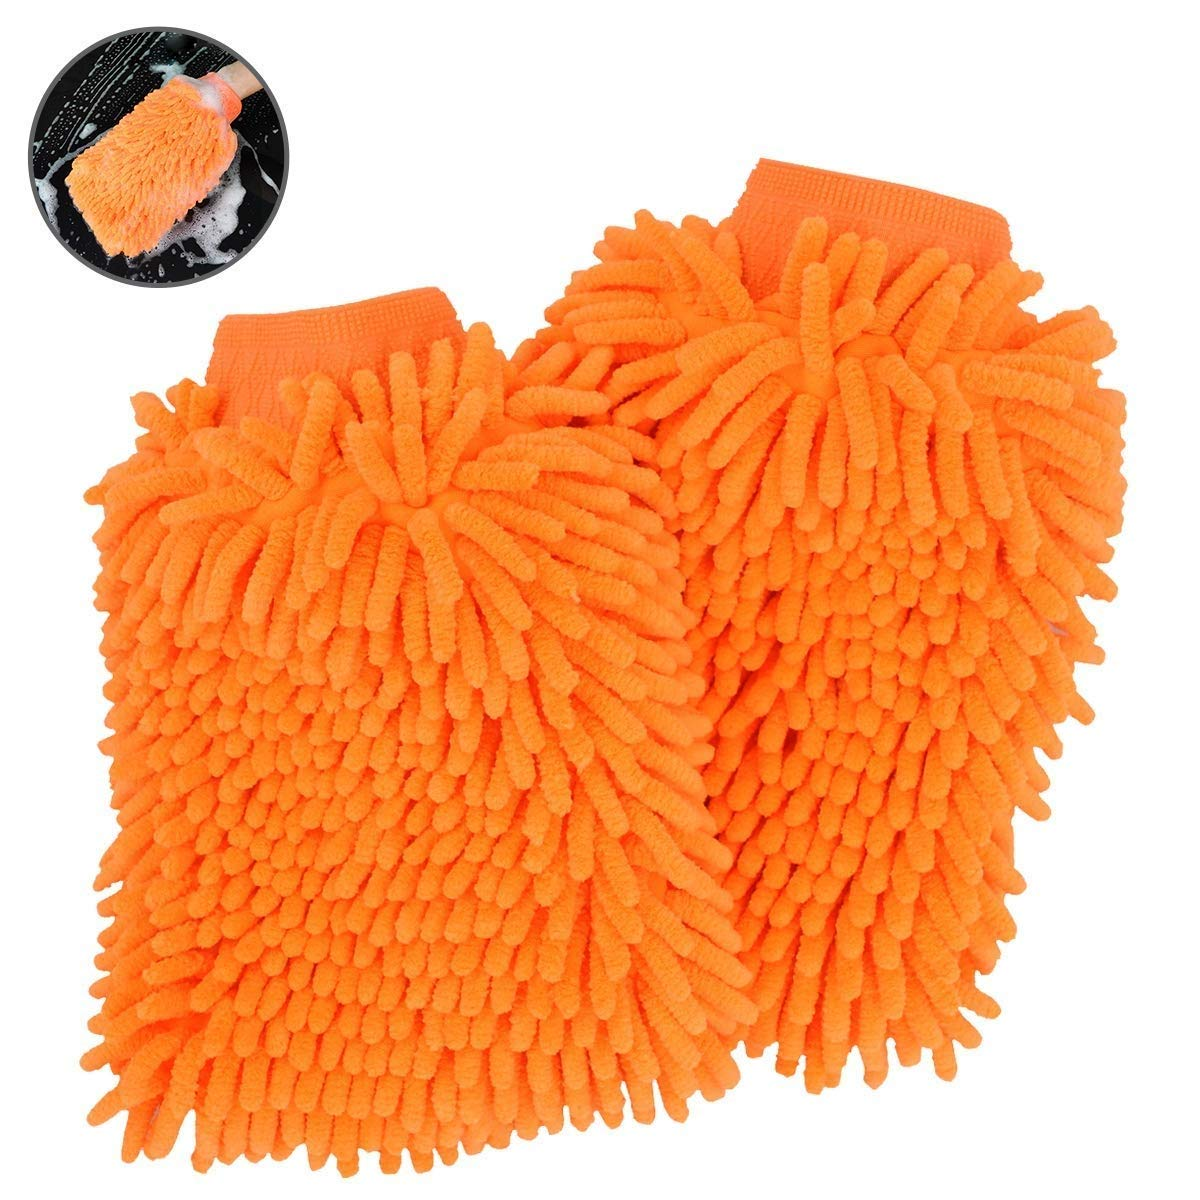 Car Wash Chenille Mitt Microfiber Extra Large Size Glove Super Absorbent Double Sided Premium Auto Ultrafine Fiber Professional Cleaning (CHINILLE MITT, Brillant Orange - 2 Pack)